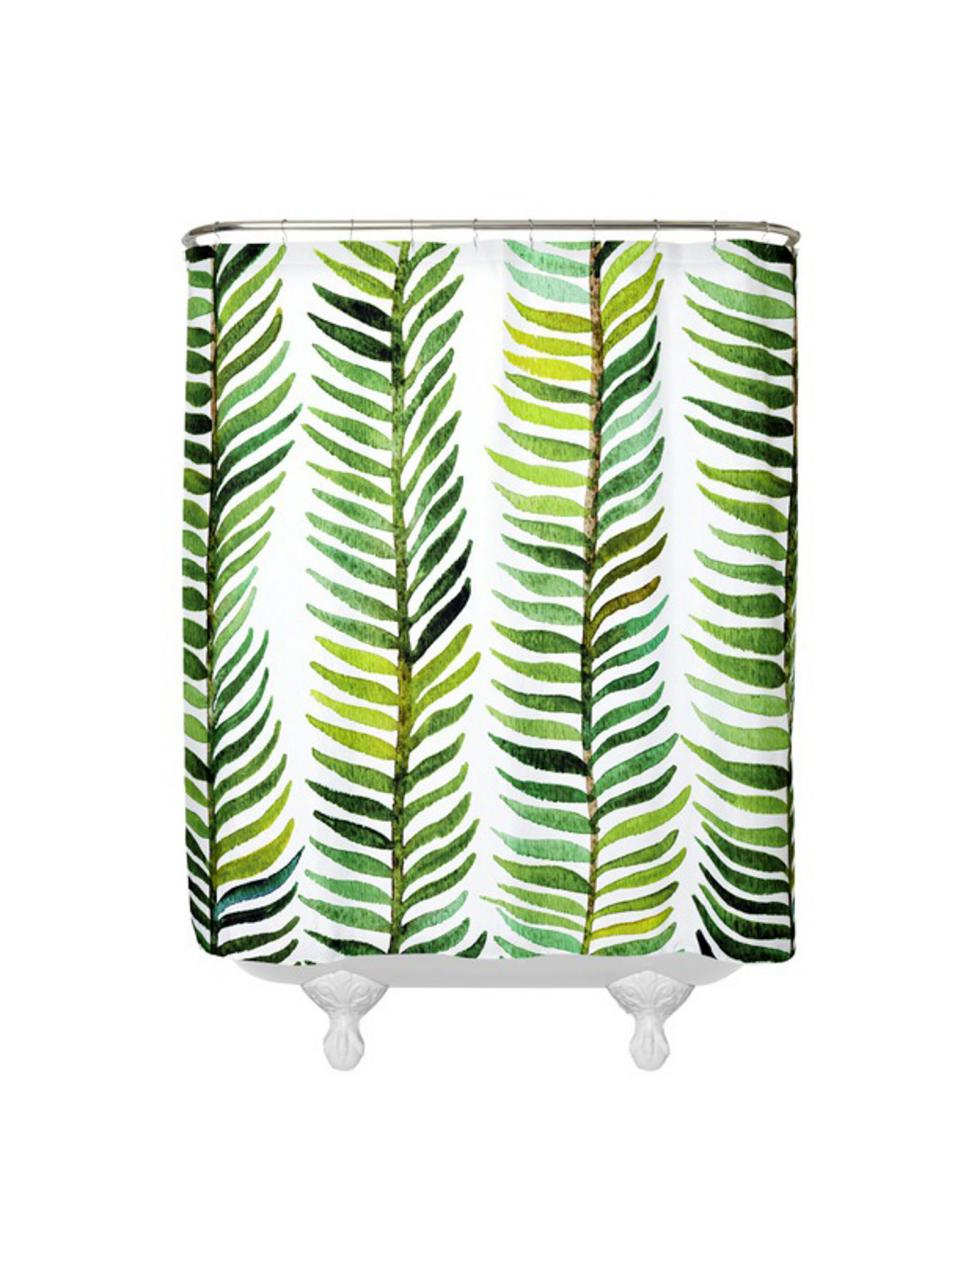 Ikea Shower Curtain for Best Your Bathroom Decoration: Shower Curtain Liner | Ikea Shower Curtain | Bathroom Curtain Rods